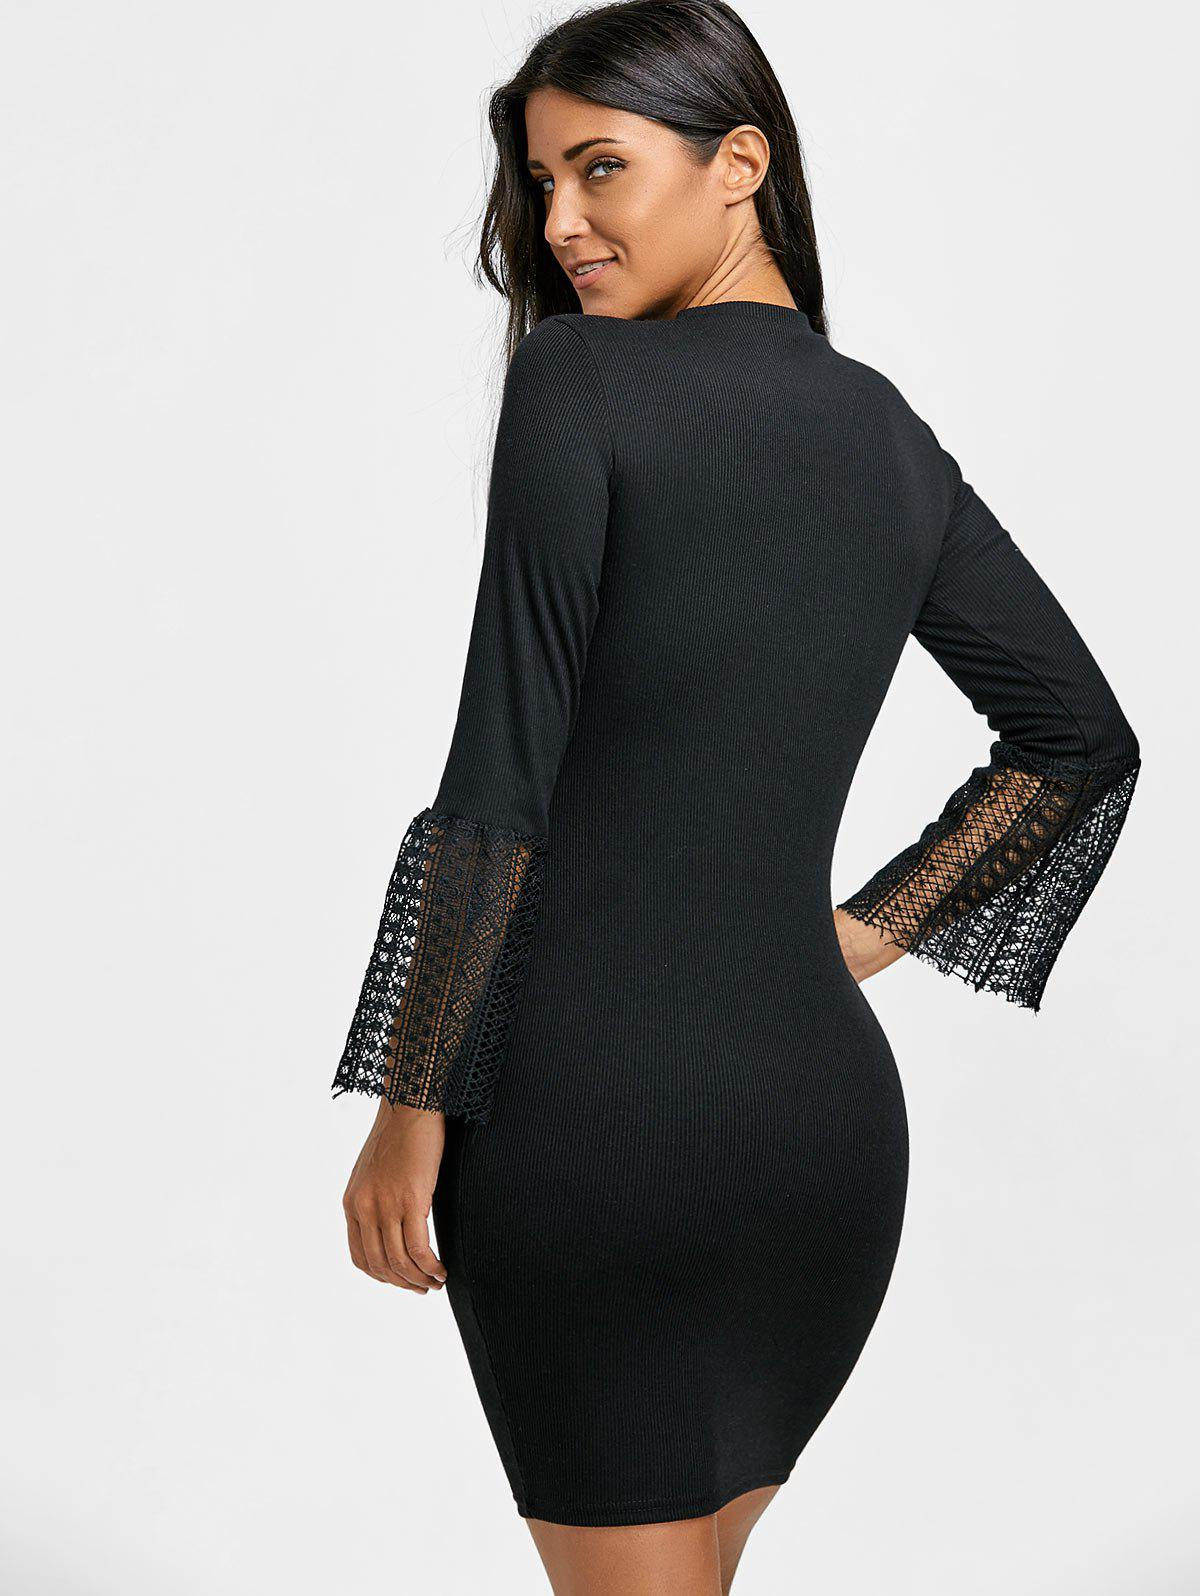 Lace Insert Knitted Bodycon Dress - BLACK S